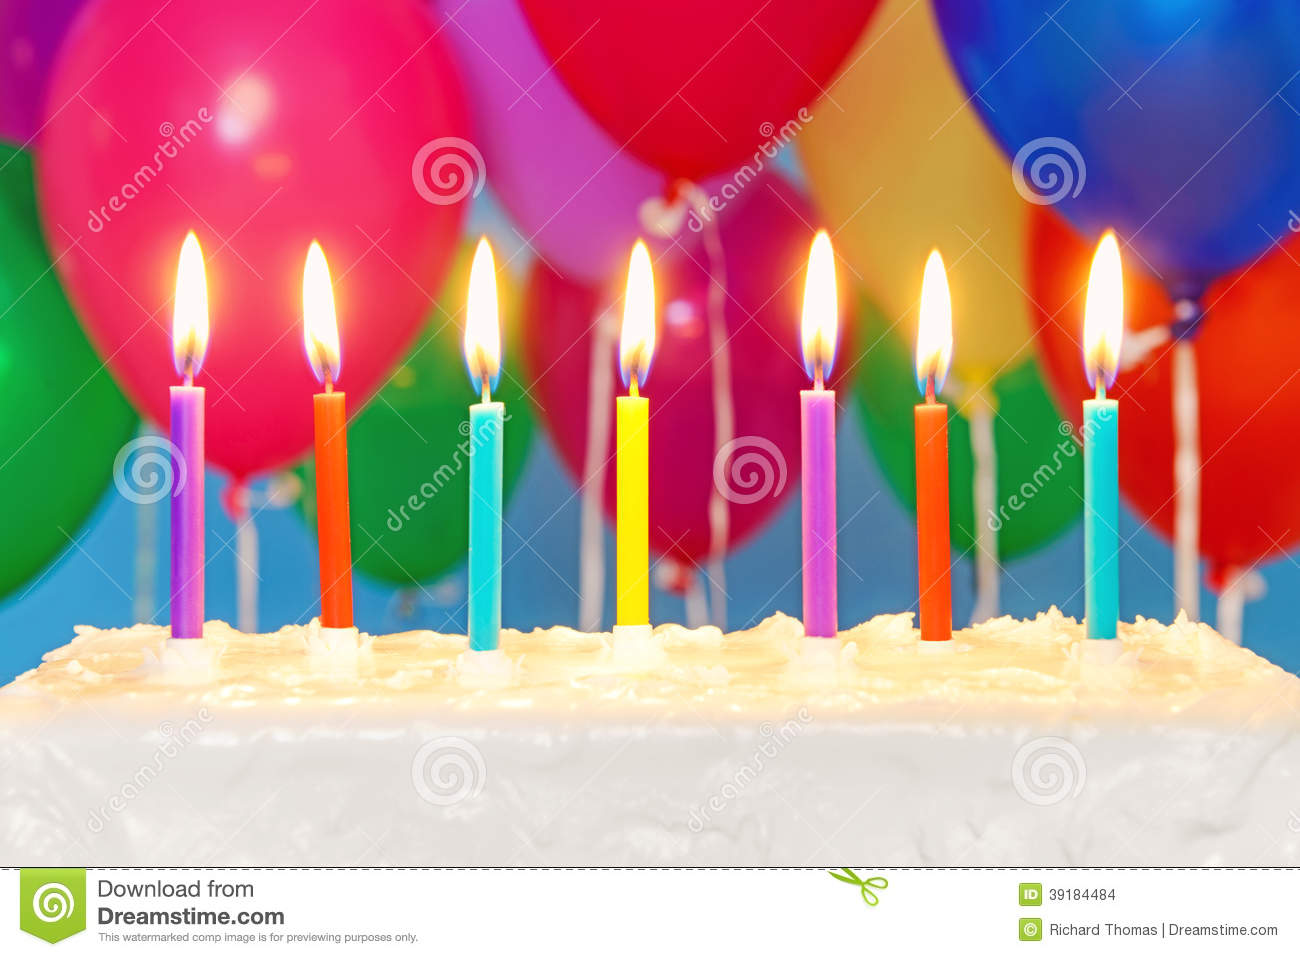 Happy birthday lit candles on colorful balloons royalty free stock - Candles On A Cake With Balloons In Background Stock Photo